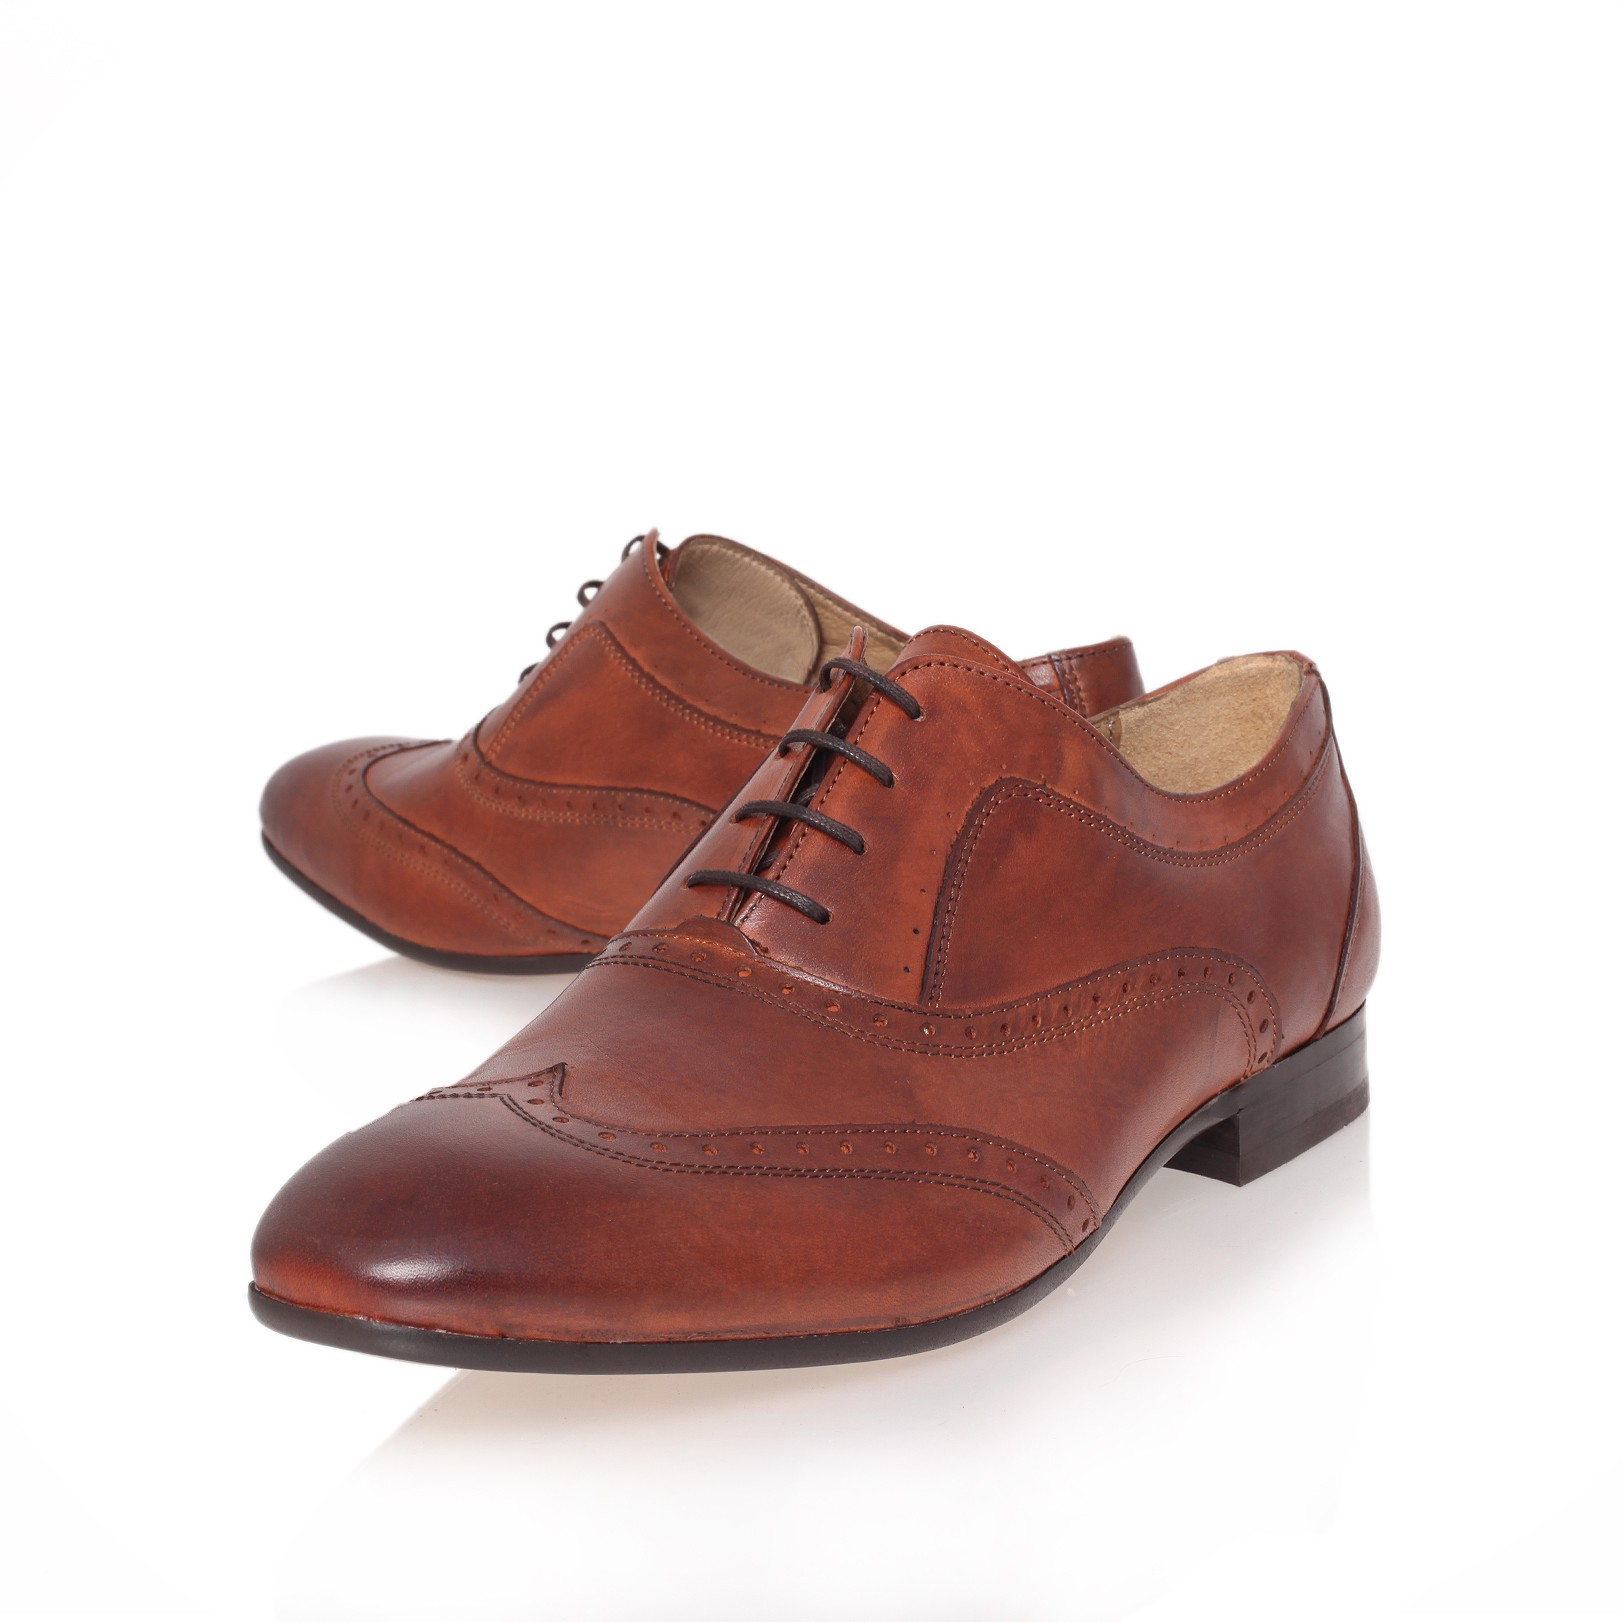 H By Hudson Leather Brogue Shoes